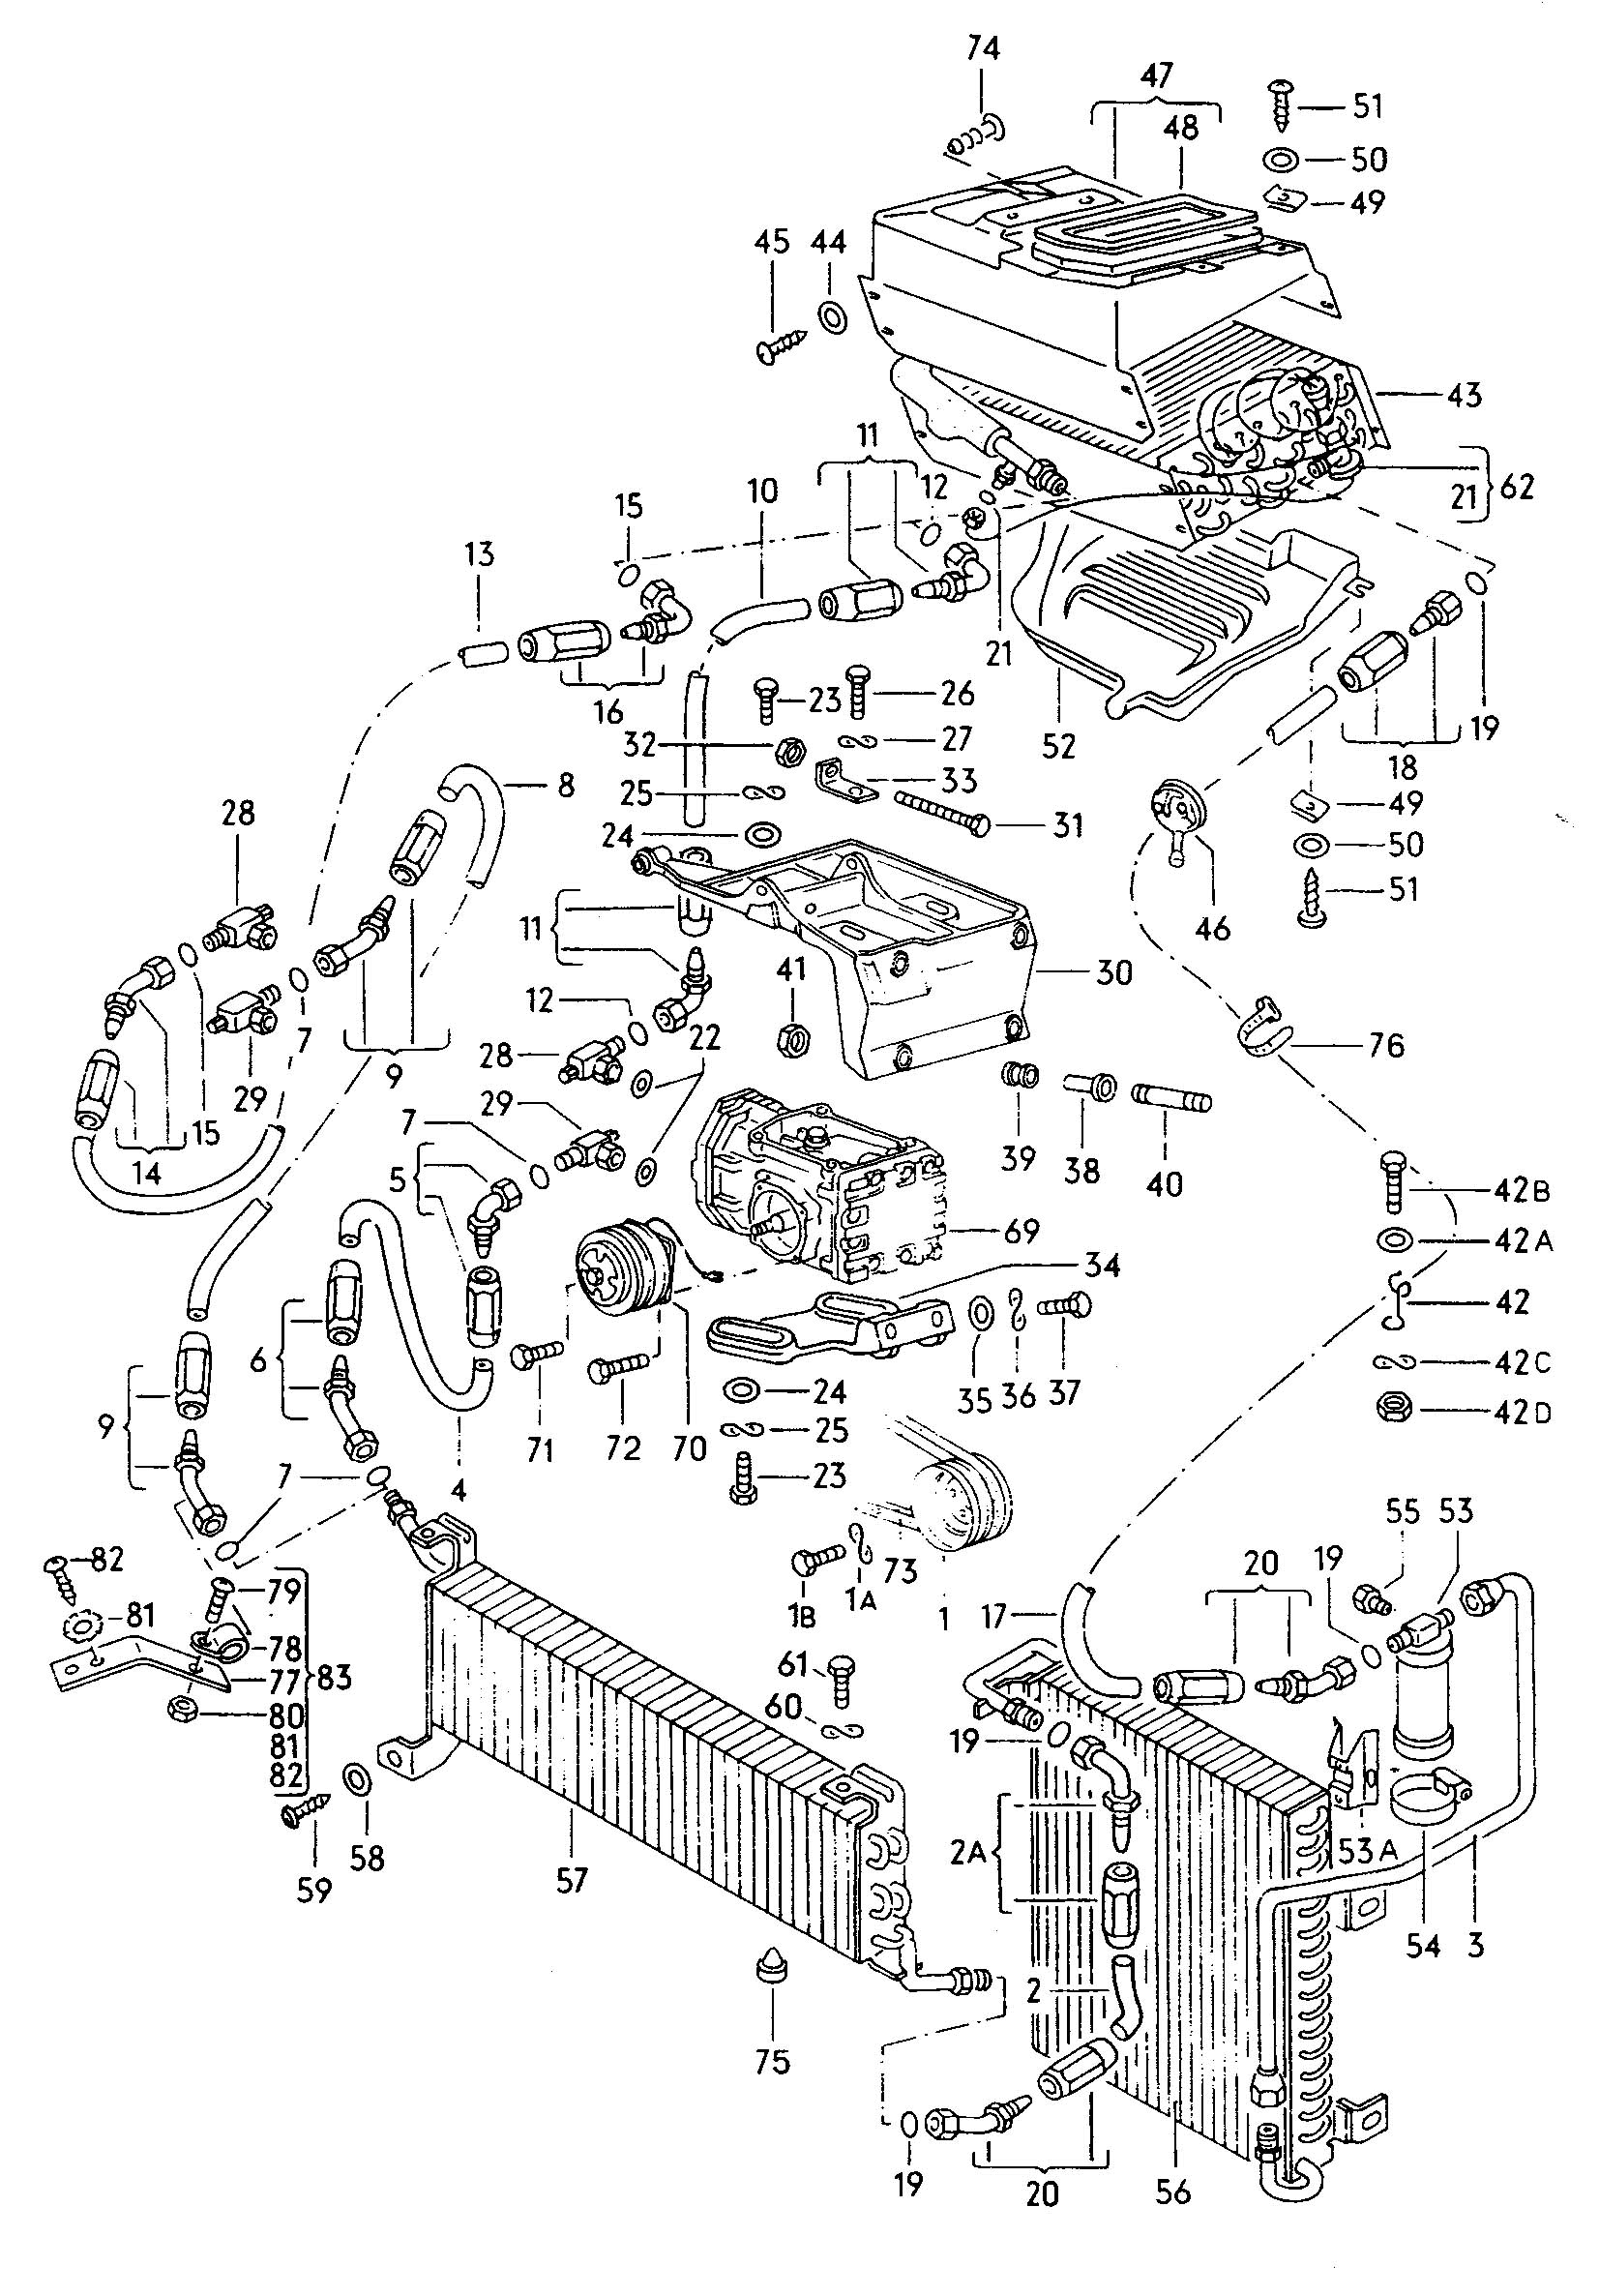 1998 Dodge Ram Radio Wiring Diagram Image Details also 1989 Volkswagen Golf Gl Gti Electrical Wiring Diagram additionally 2001 Chrysler Sebring Radio Wiring Diagram as well 4 8l Oil Pressure Sensor Location additionally Ignition switch replacement. on vw jetta starter circuit